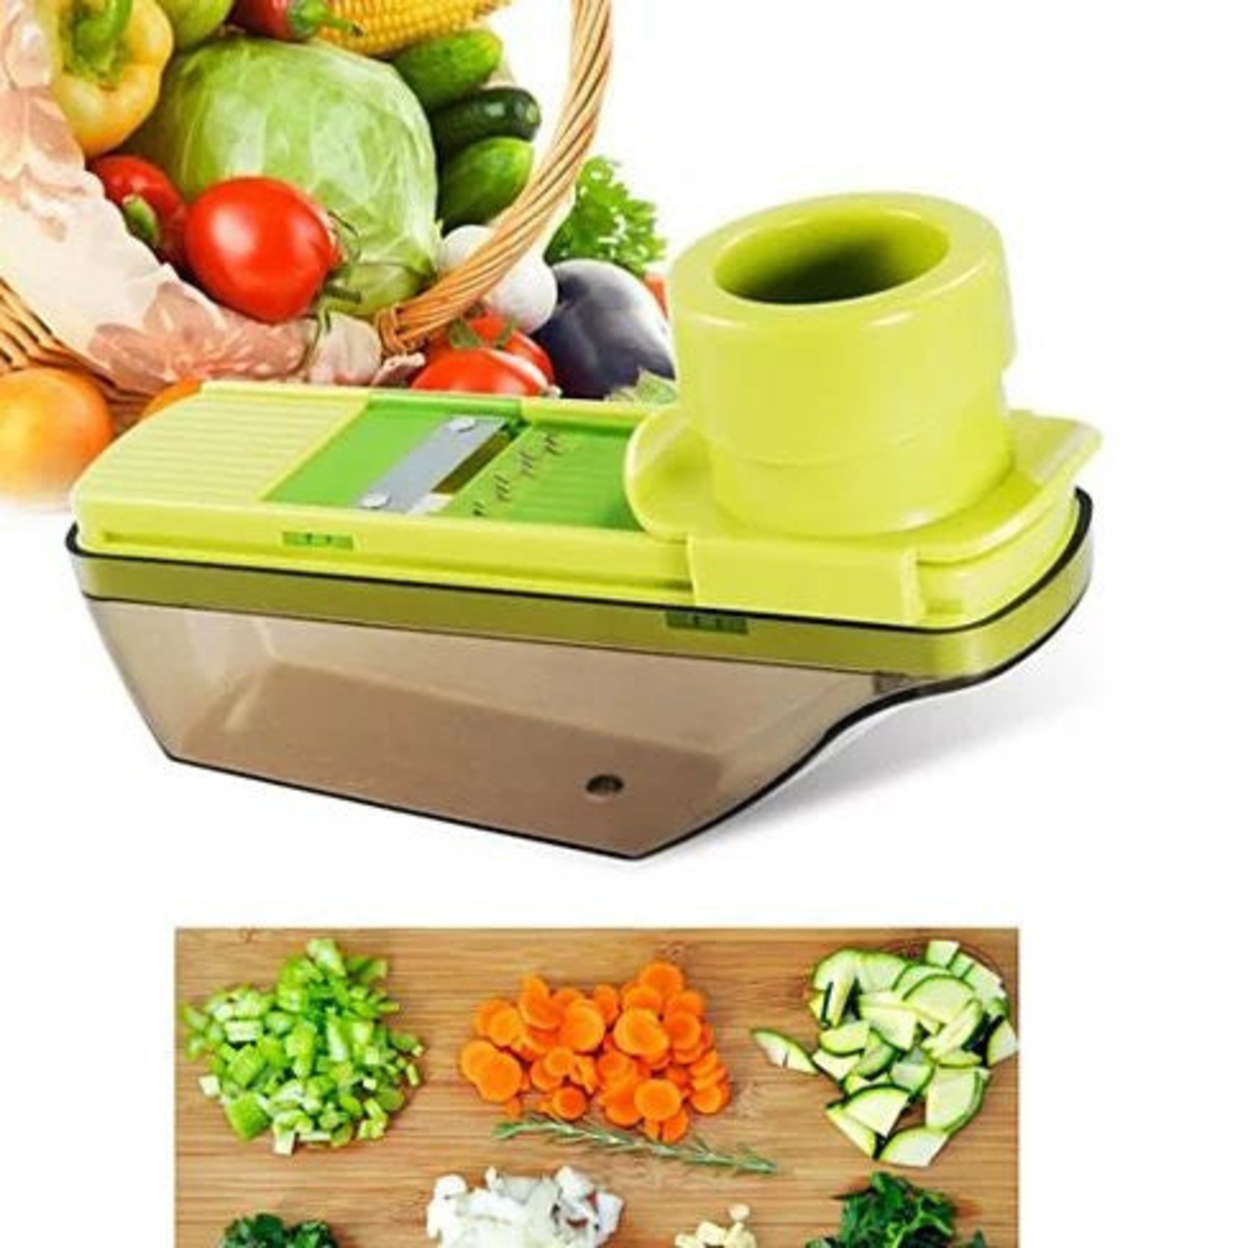 Veggie Lovers Compact Palm Sized Veggie Slicer And Mini Grater